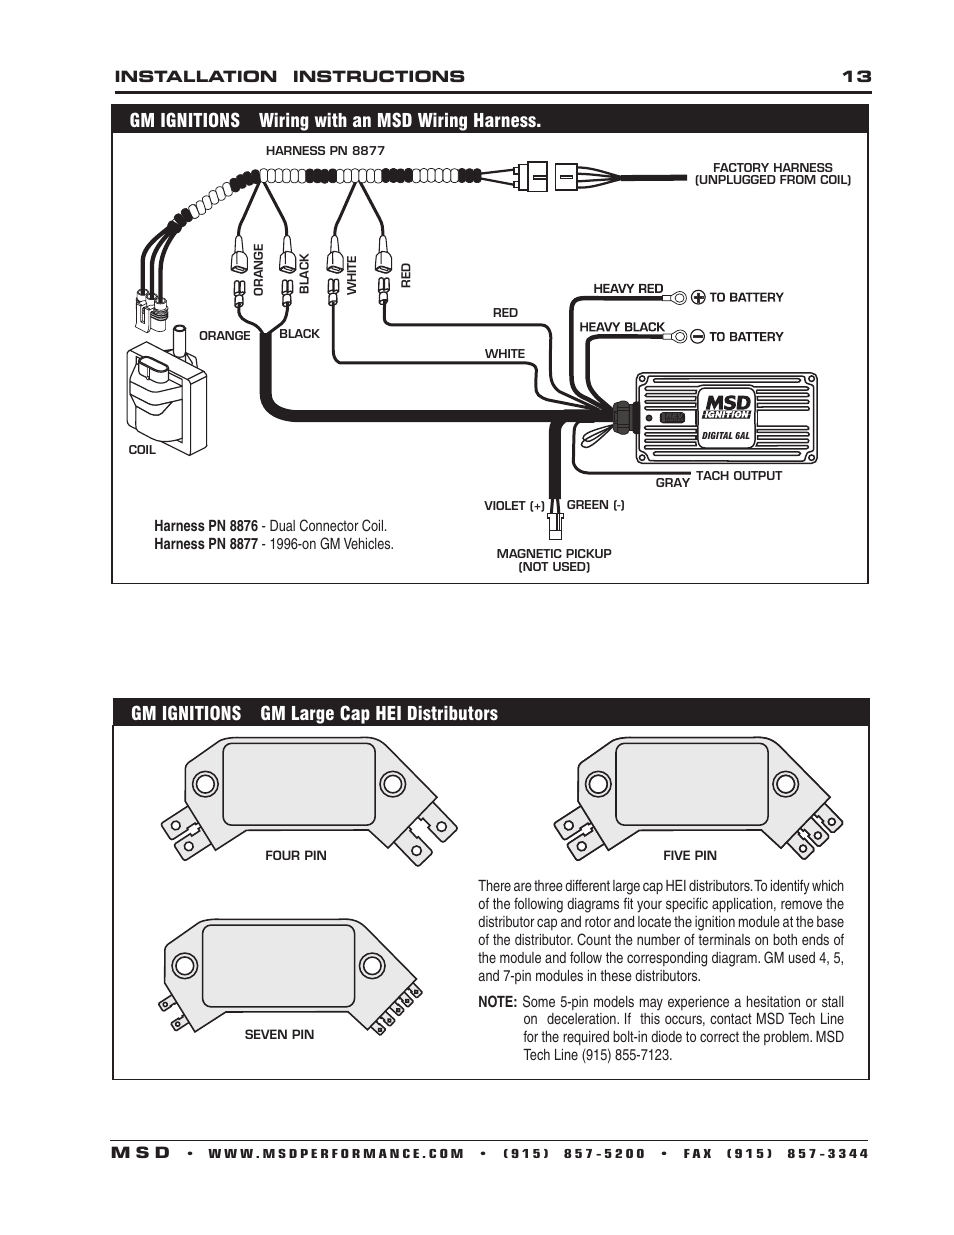 medium resolution of gm ignitions wiring with an msd wiring harness gm ignitions gm gm hei distributor to msd 6200 msd digital 6a wiring harness